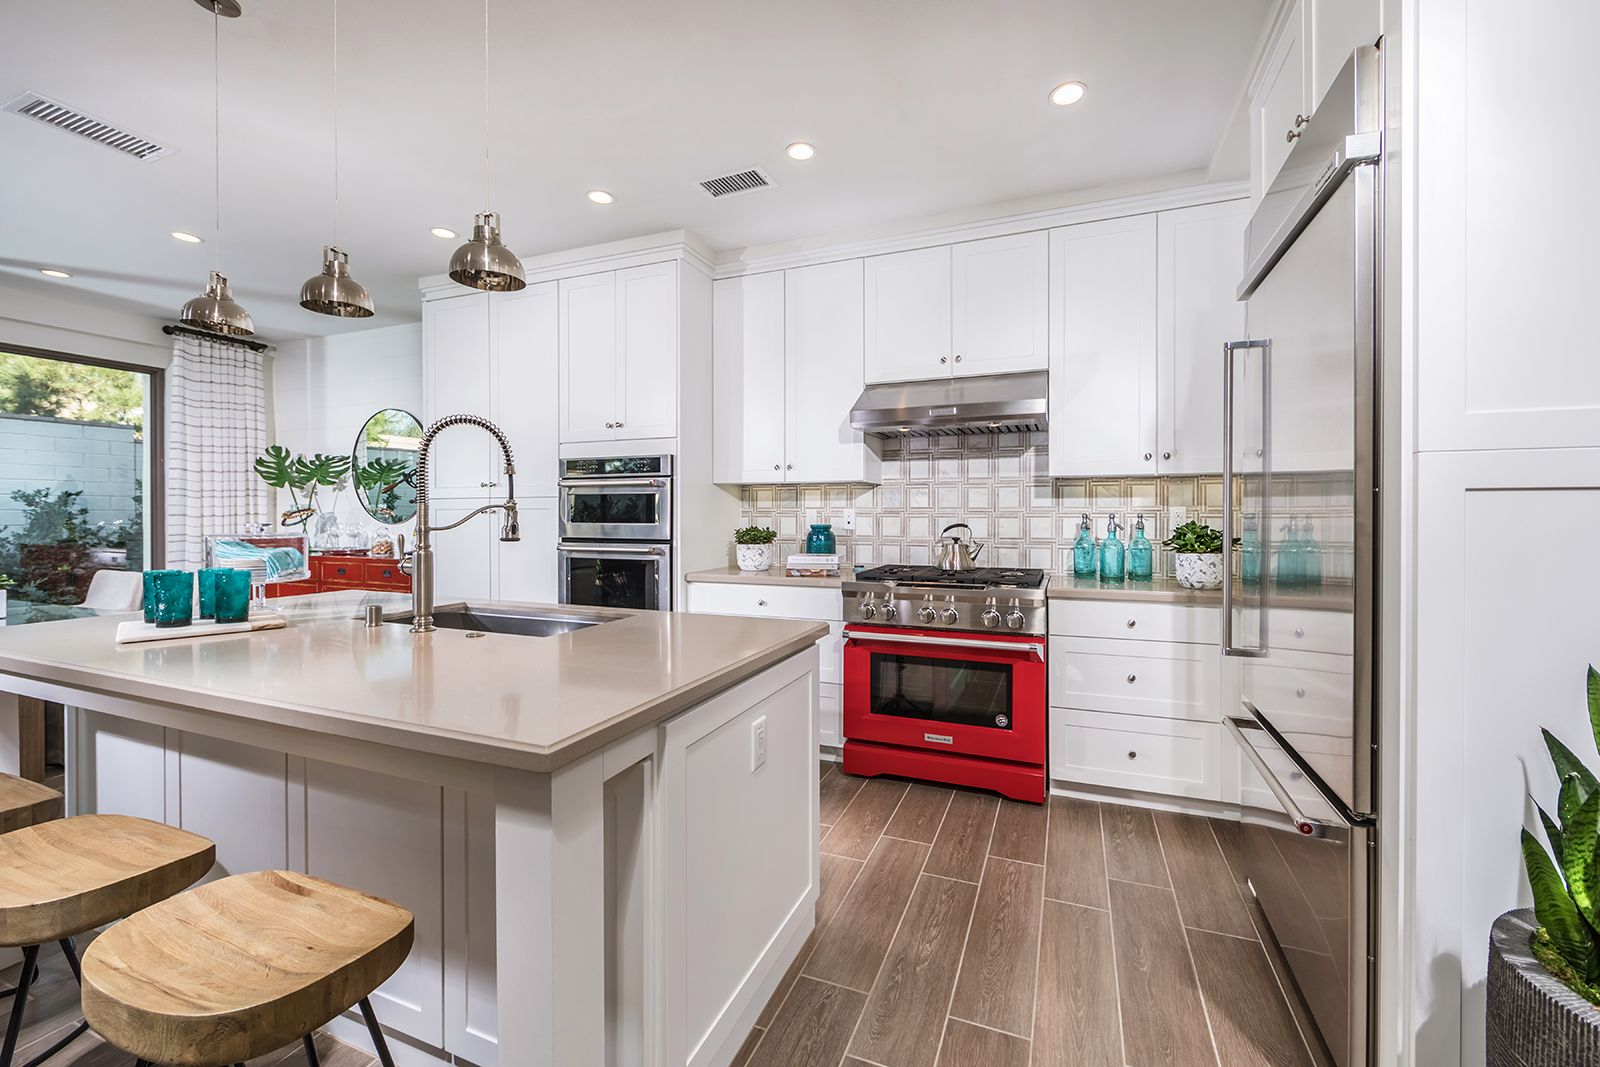 Kitchen featured in the Residence 1 By Irvine Pacific in Orange County, CA